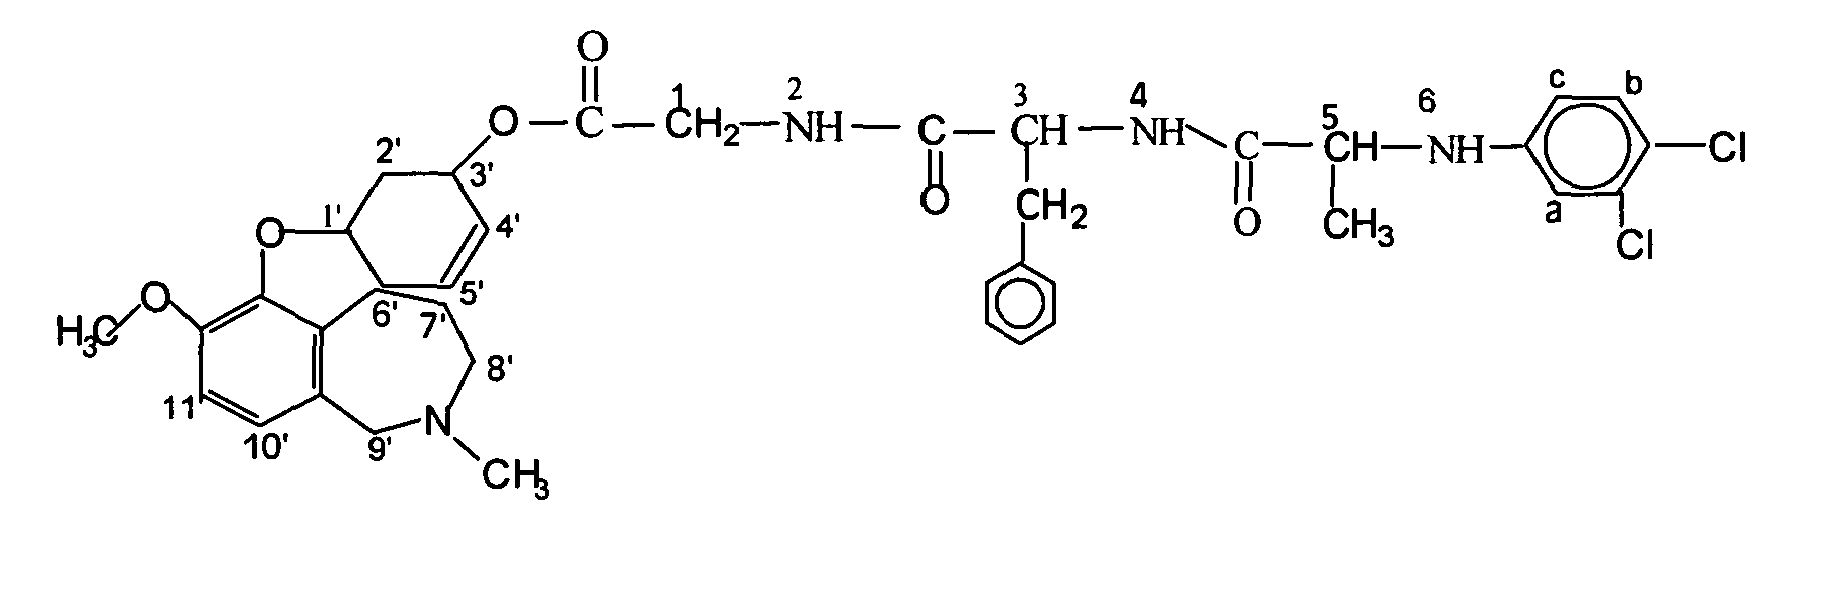 EP2123328A1 - Galanthamine derivatives, methods for their